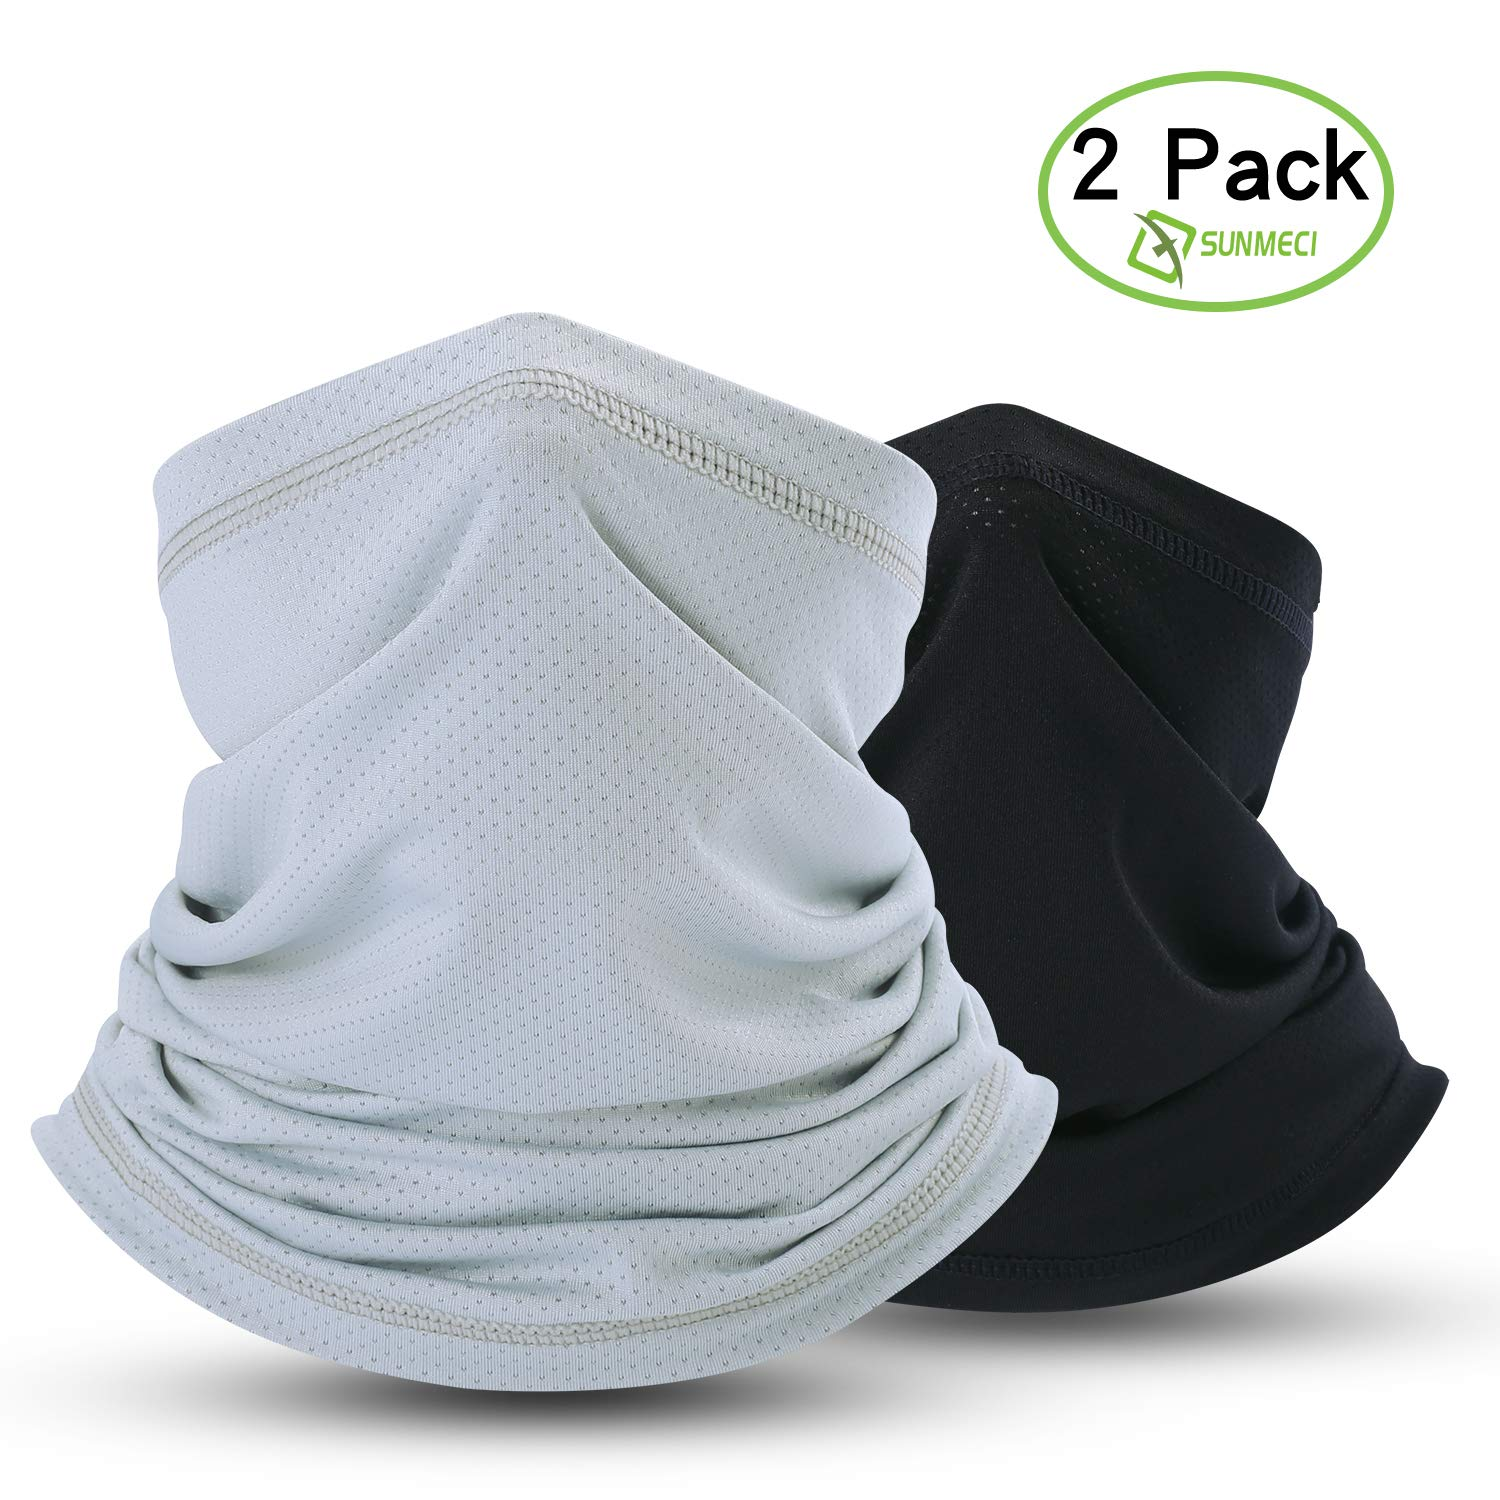 SUNMECI Summer Face Mask Breathable Sun Dust Protection Neck Gaiter for Fishing Hiking Camping Outdoors Versatile Headwrap